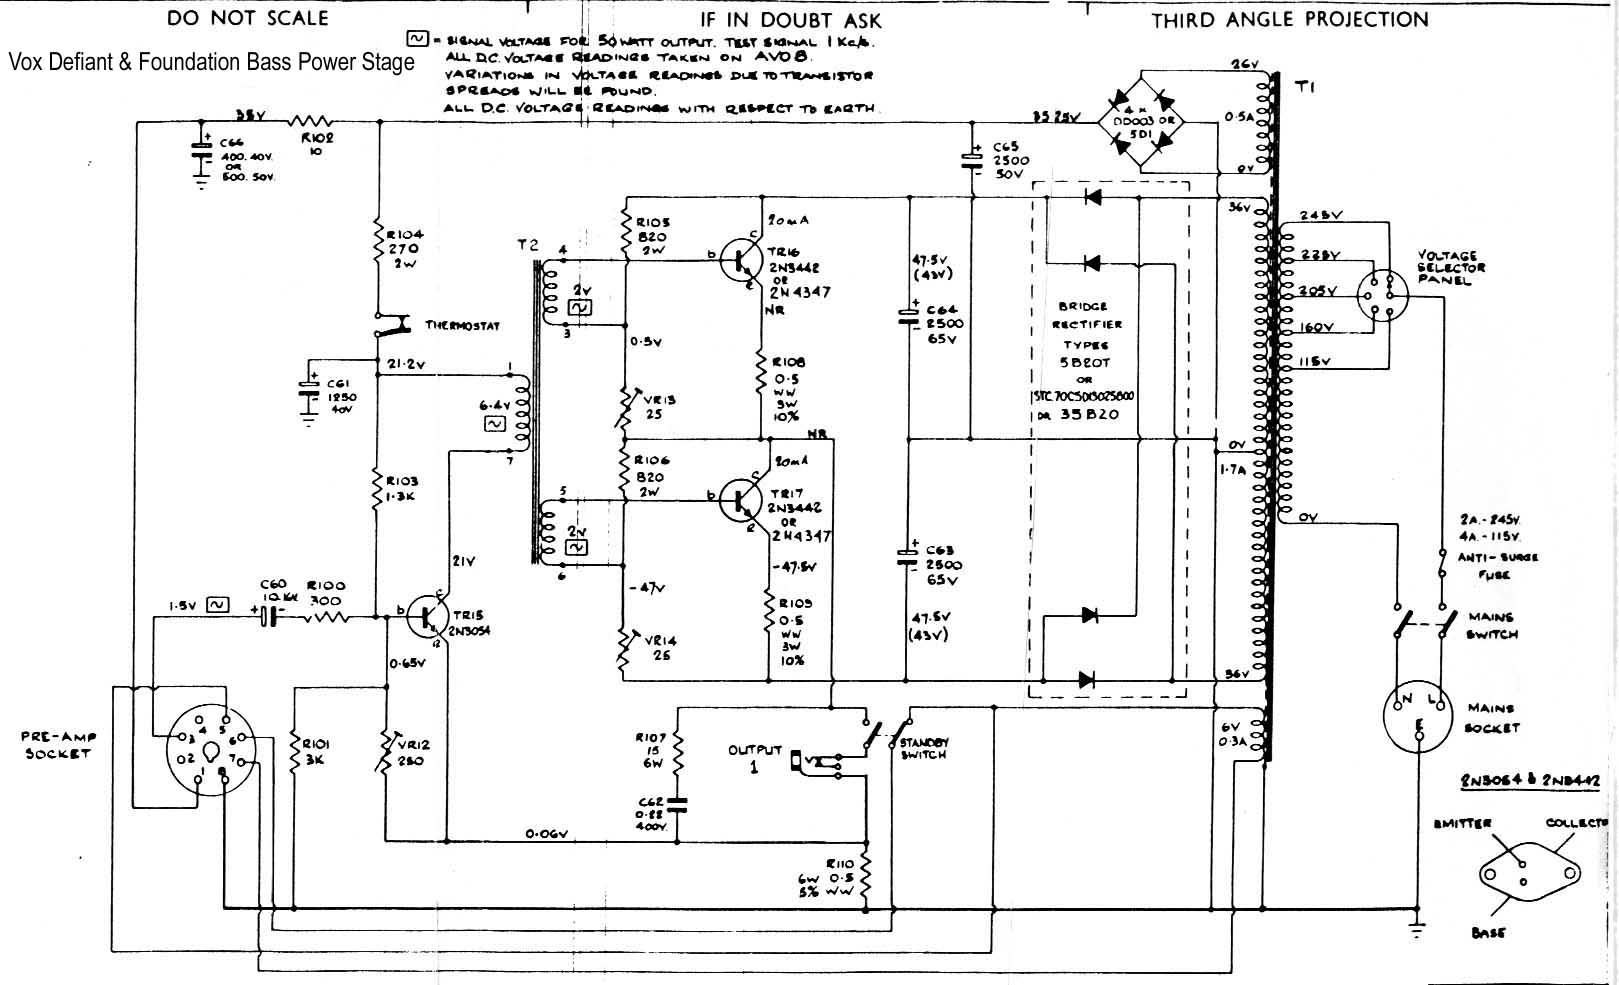 Bass Amp Wiring Diagram Great Installation Of Circuit For Headphone Amplifier From Redcircuits Vox Vintage Diagrams Rh Korguk Com Jazz Guitar